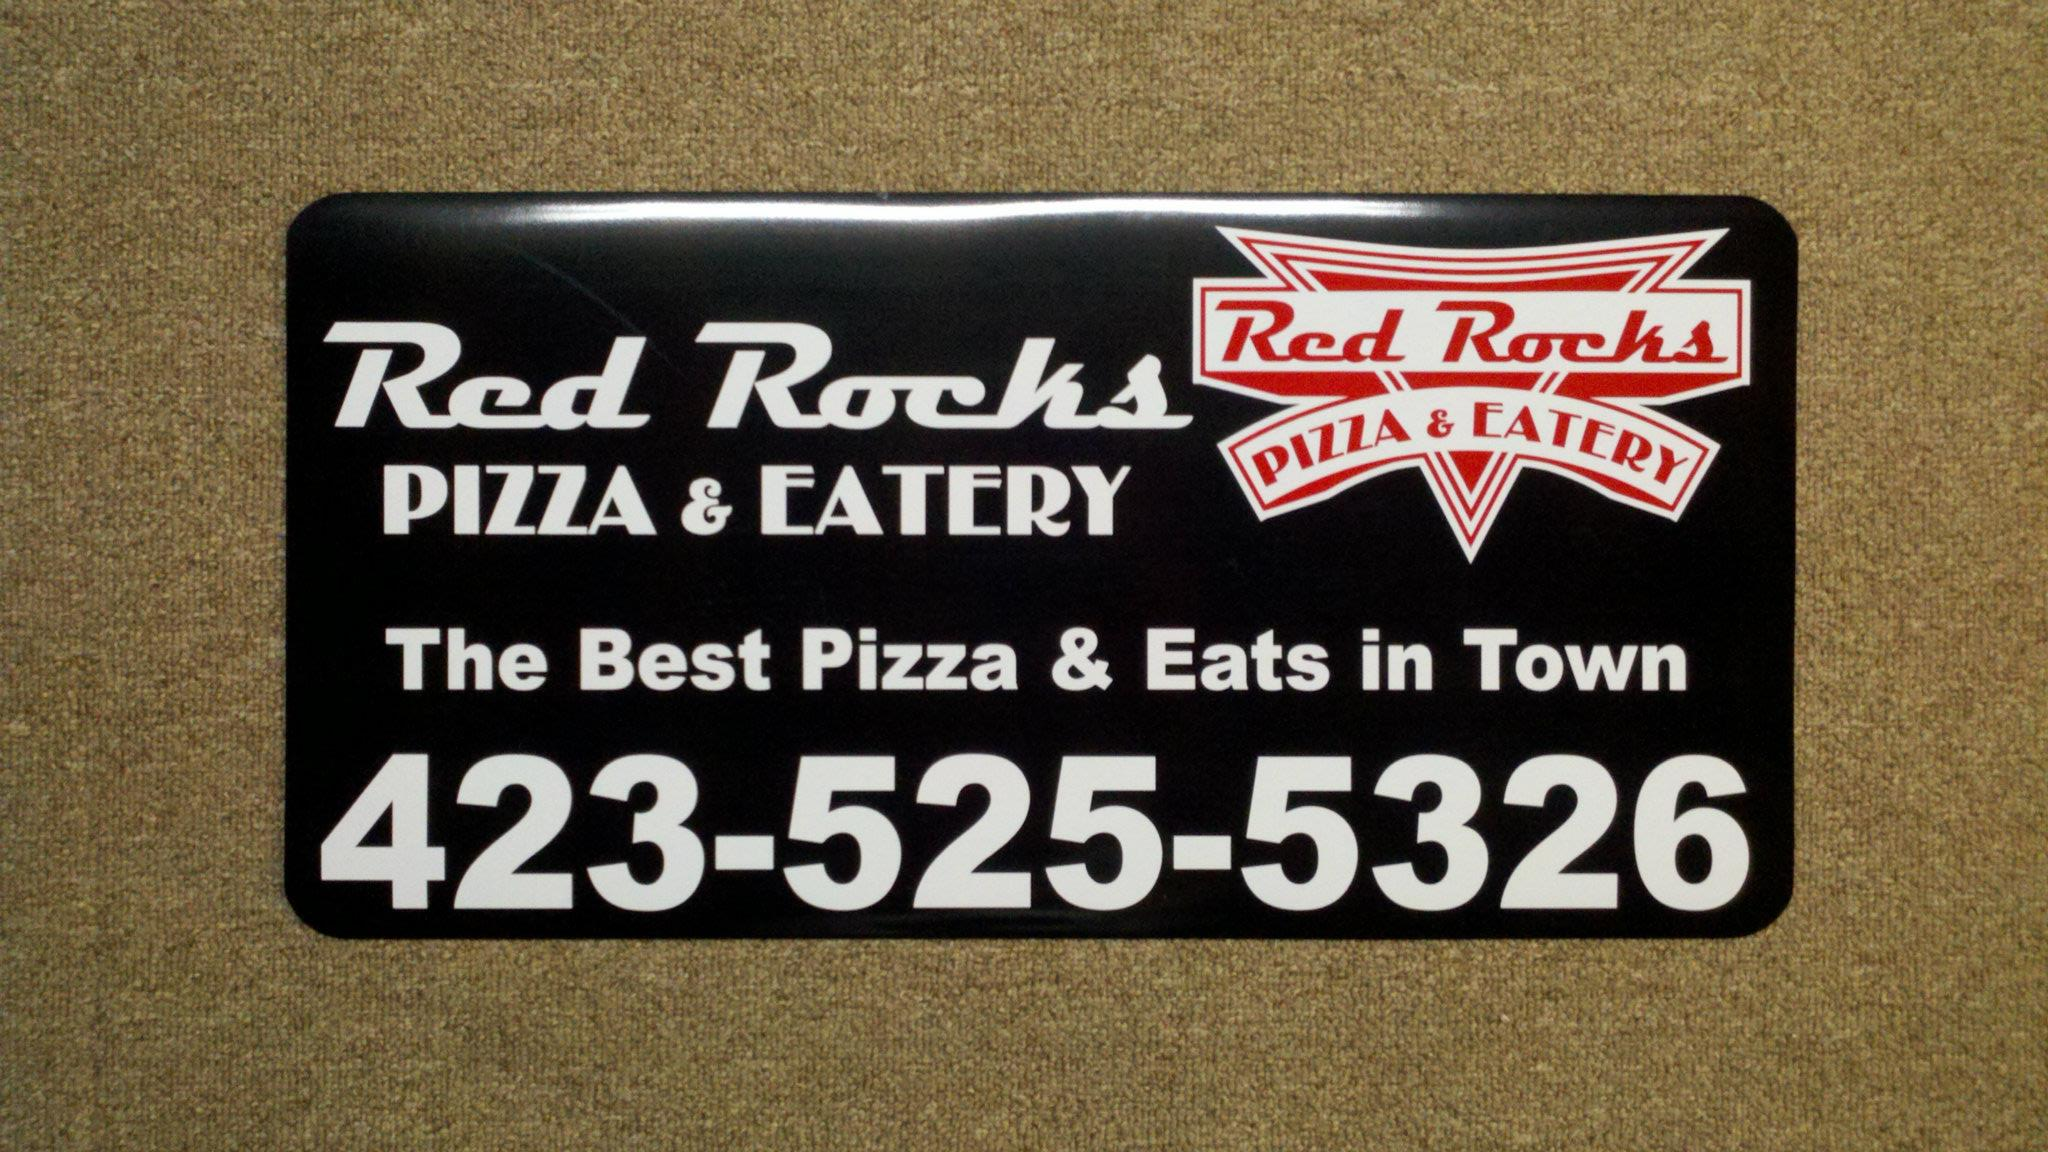 Red Rocks Pizza & Eatery